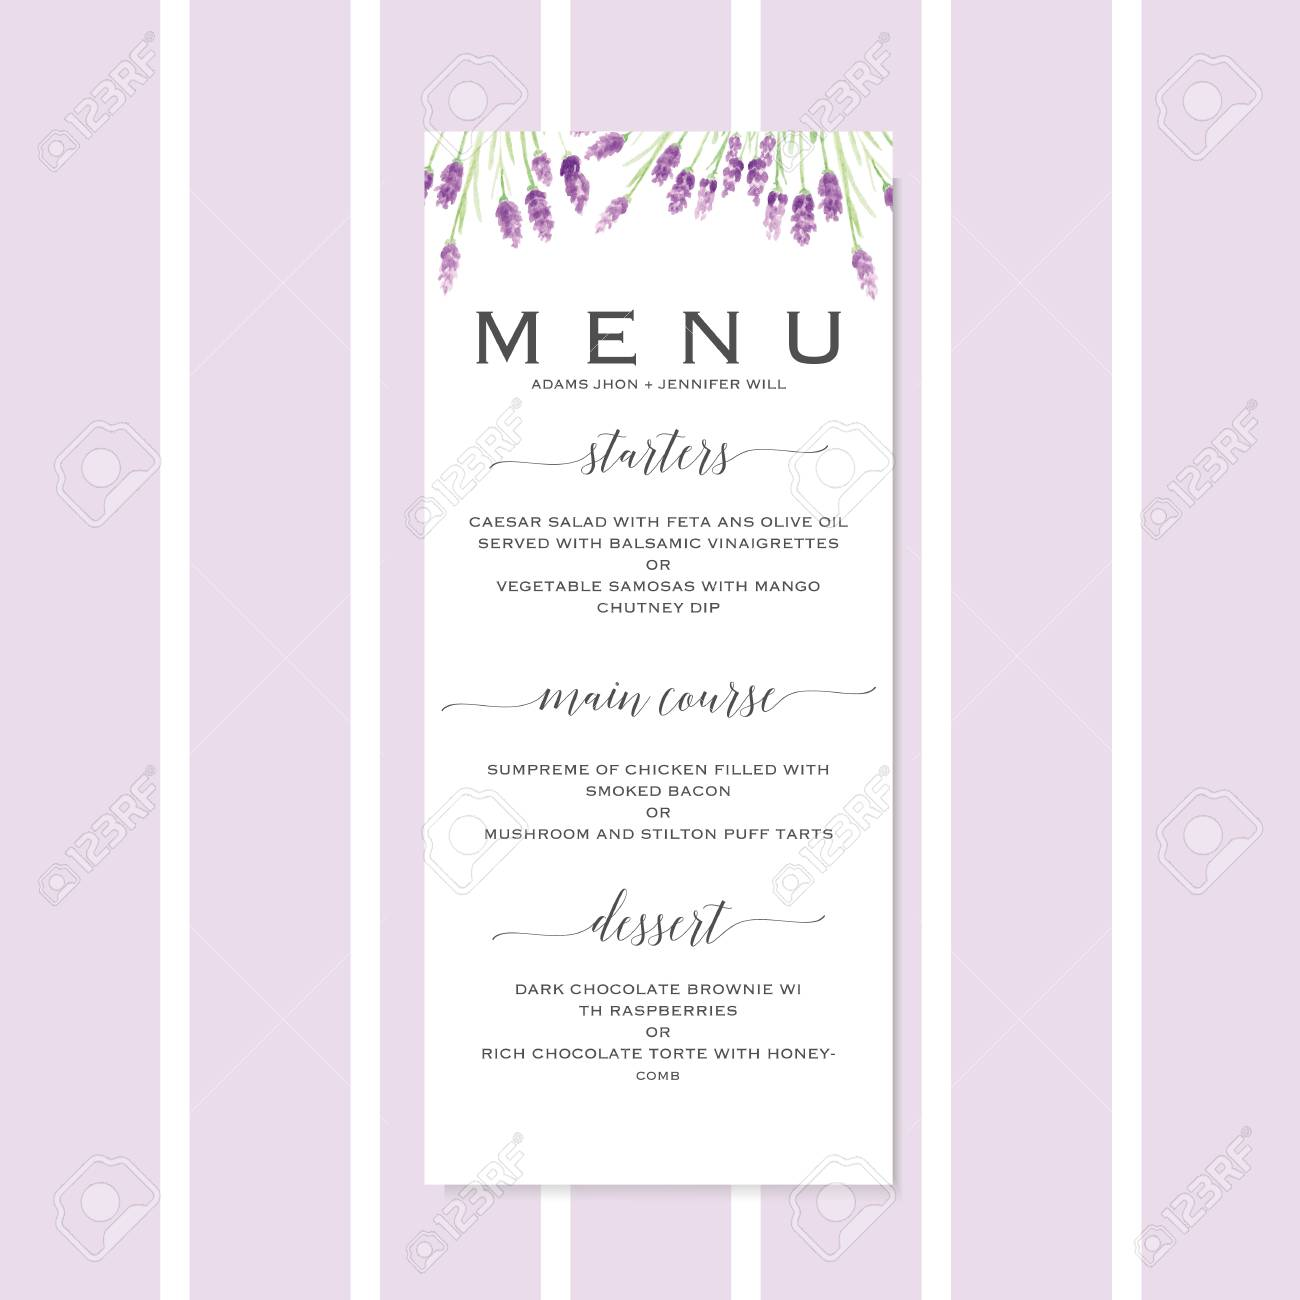 Wedding Menu Template.Stock Illustration